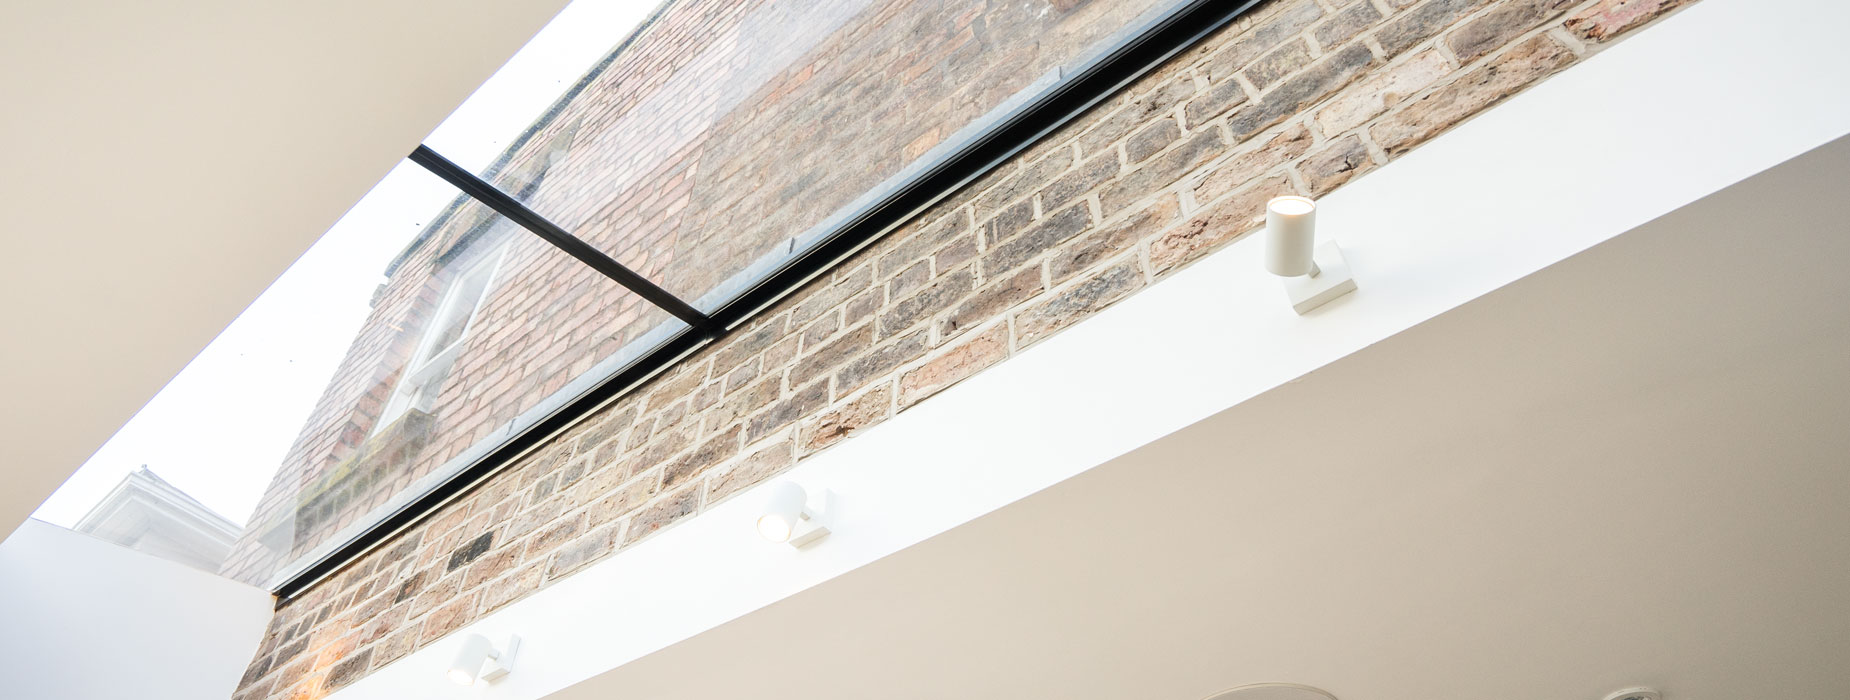 Bespoke glass roof light connecting the existing building to the new extension in Liverpool. This stunning feature bridges the gap between modern and old in a seemingly impossible way leaving the main back wall of the house to appear as if it is floating in the air.